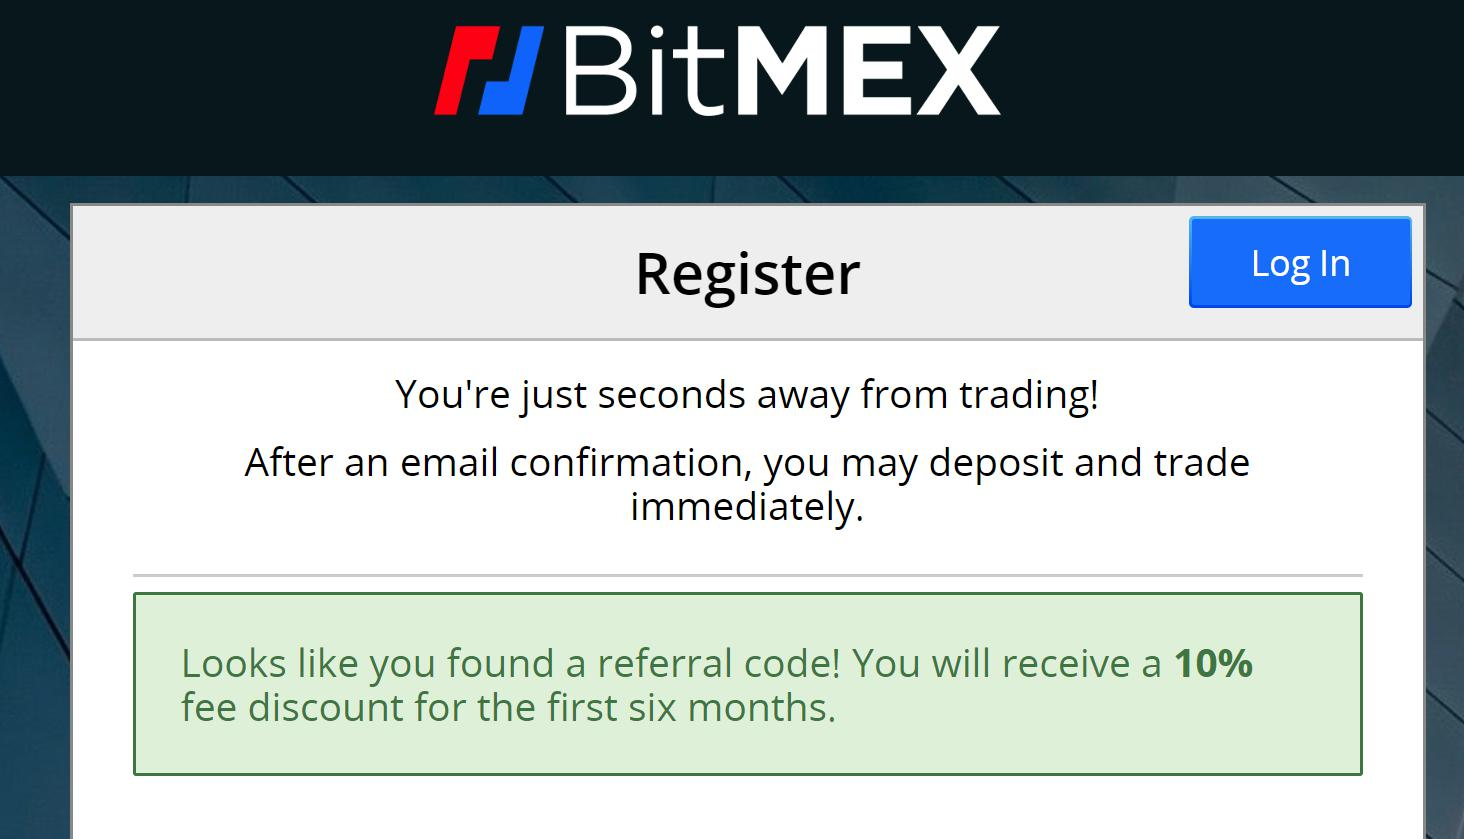 bitmex referral program